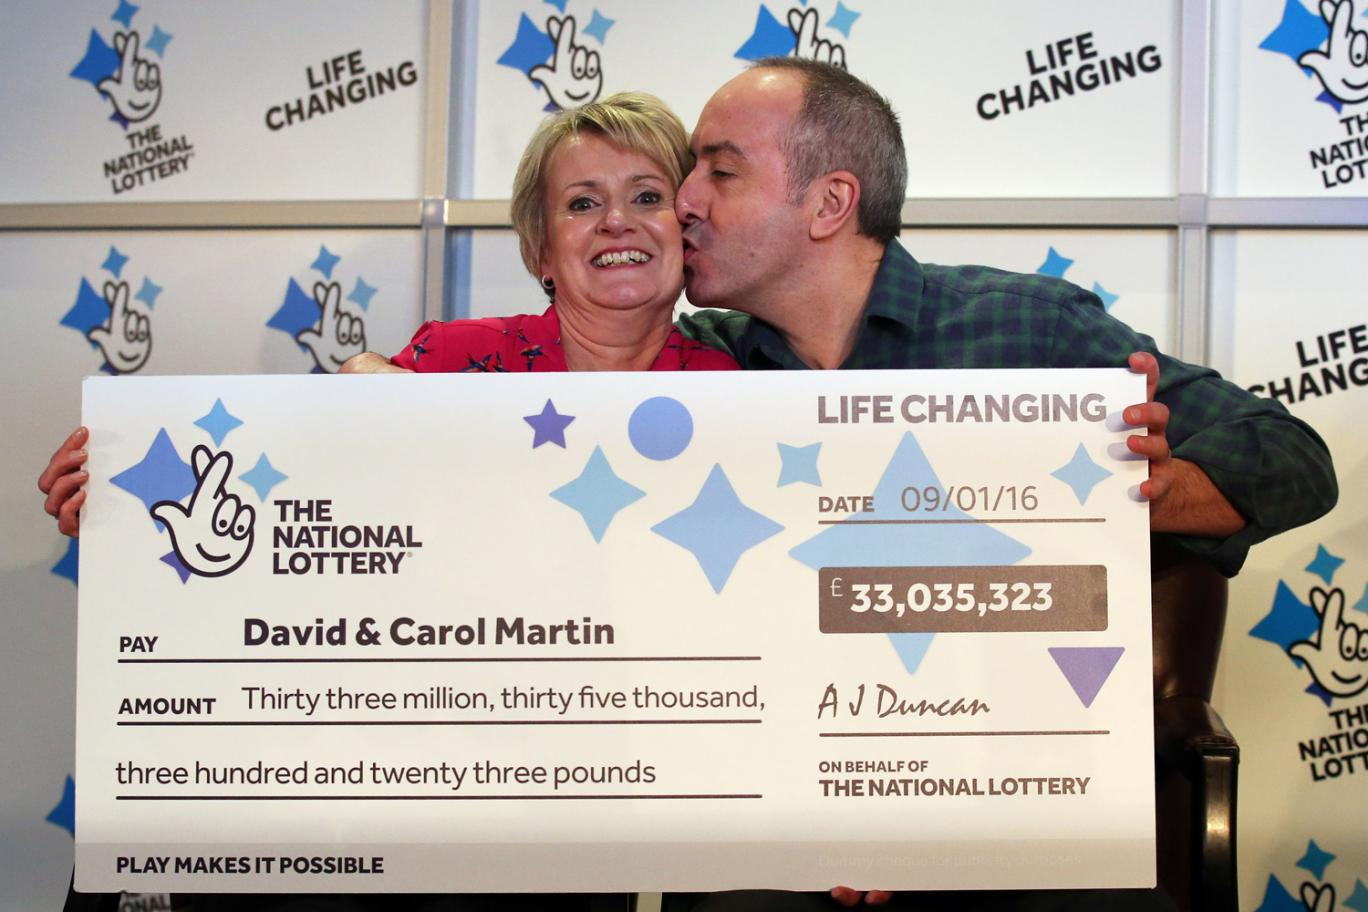 UK couple who won £33 million to reunite long-lost family